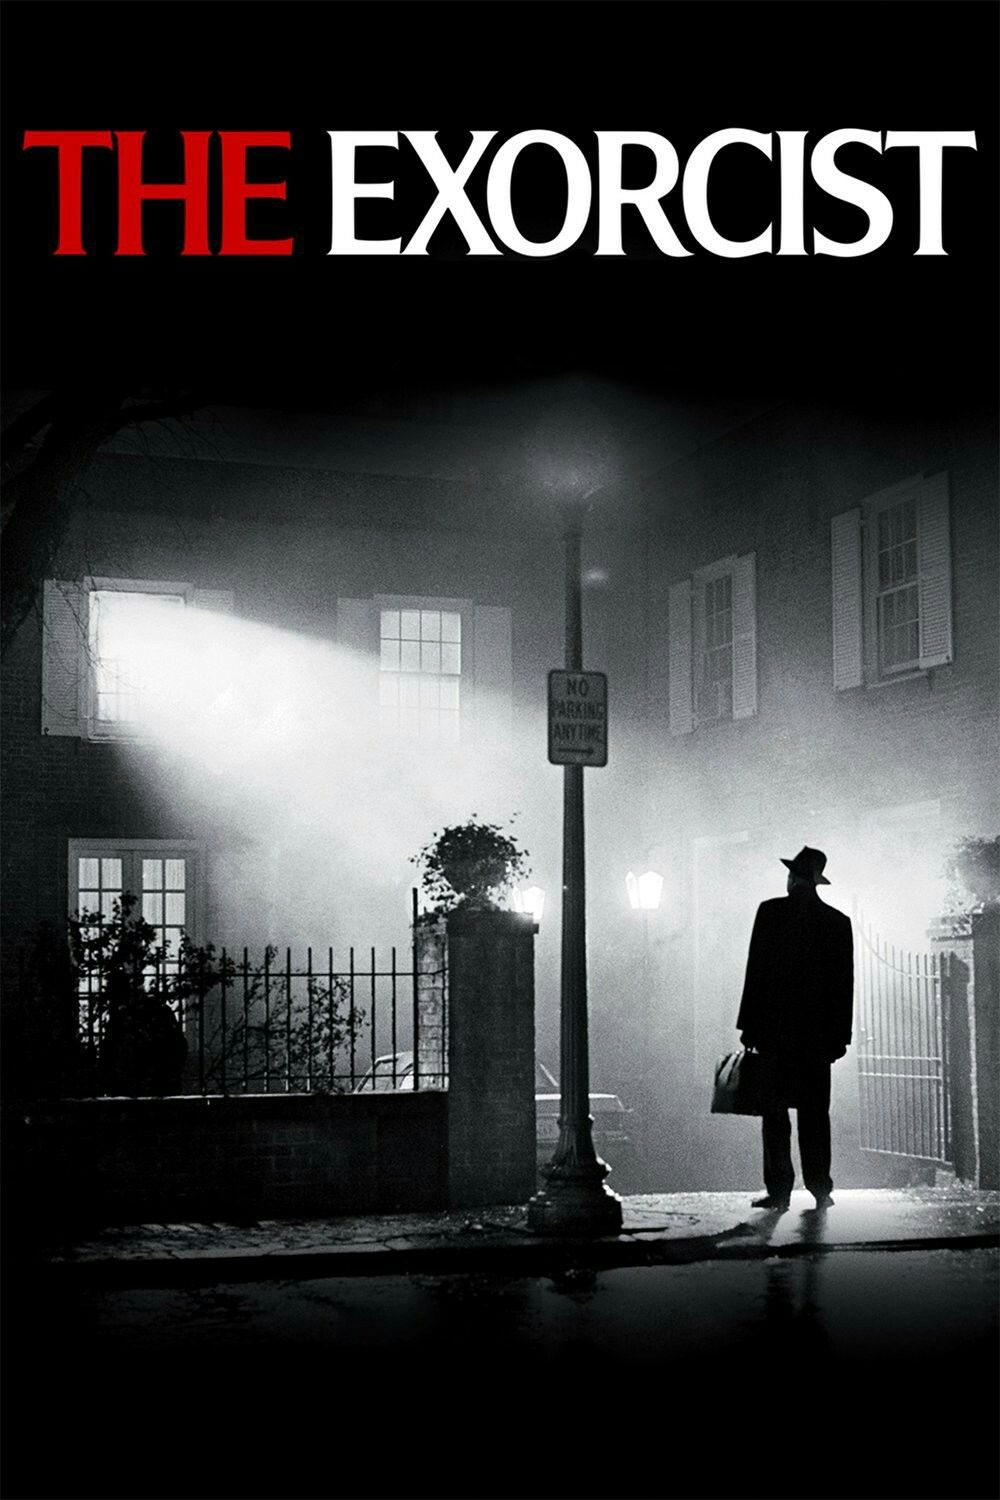 the exorcist movie poster fantastic